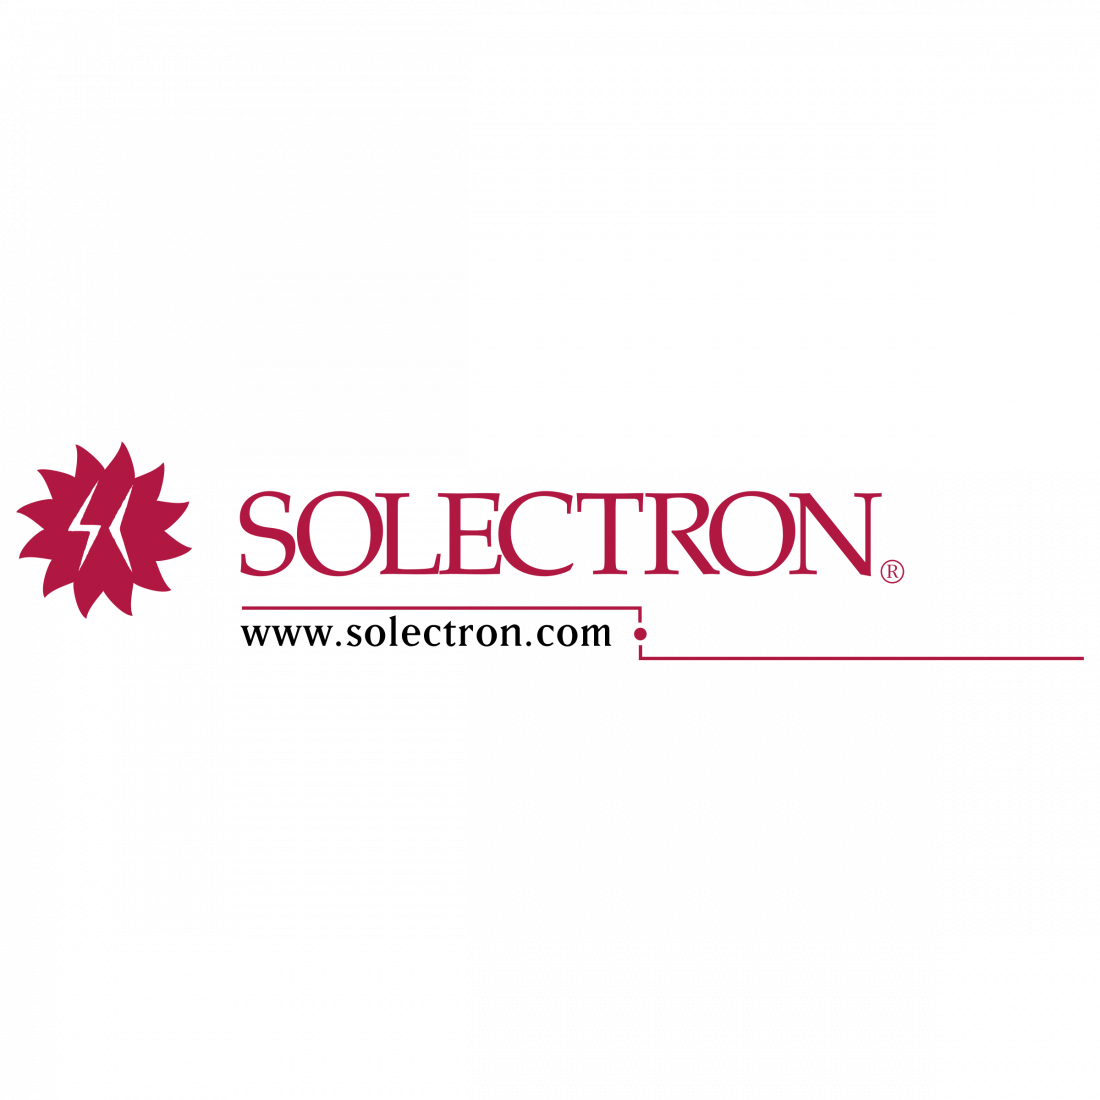 06052007_Solectron_SEC